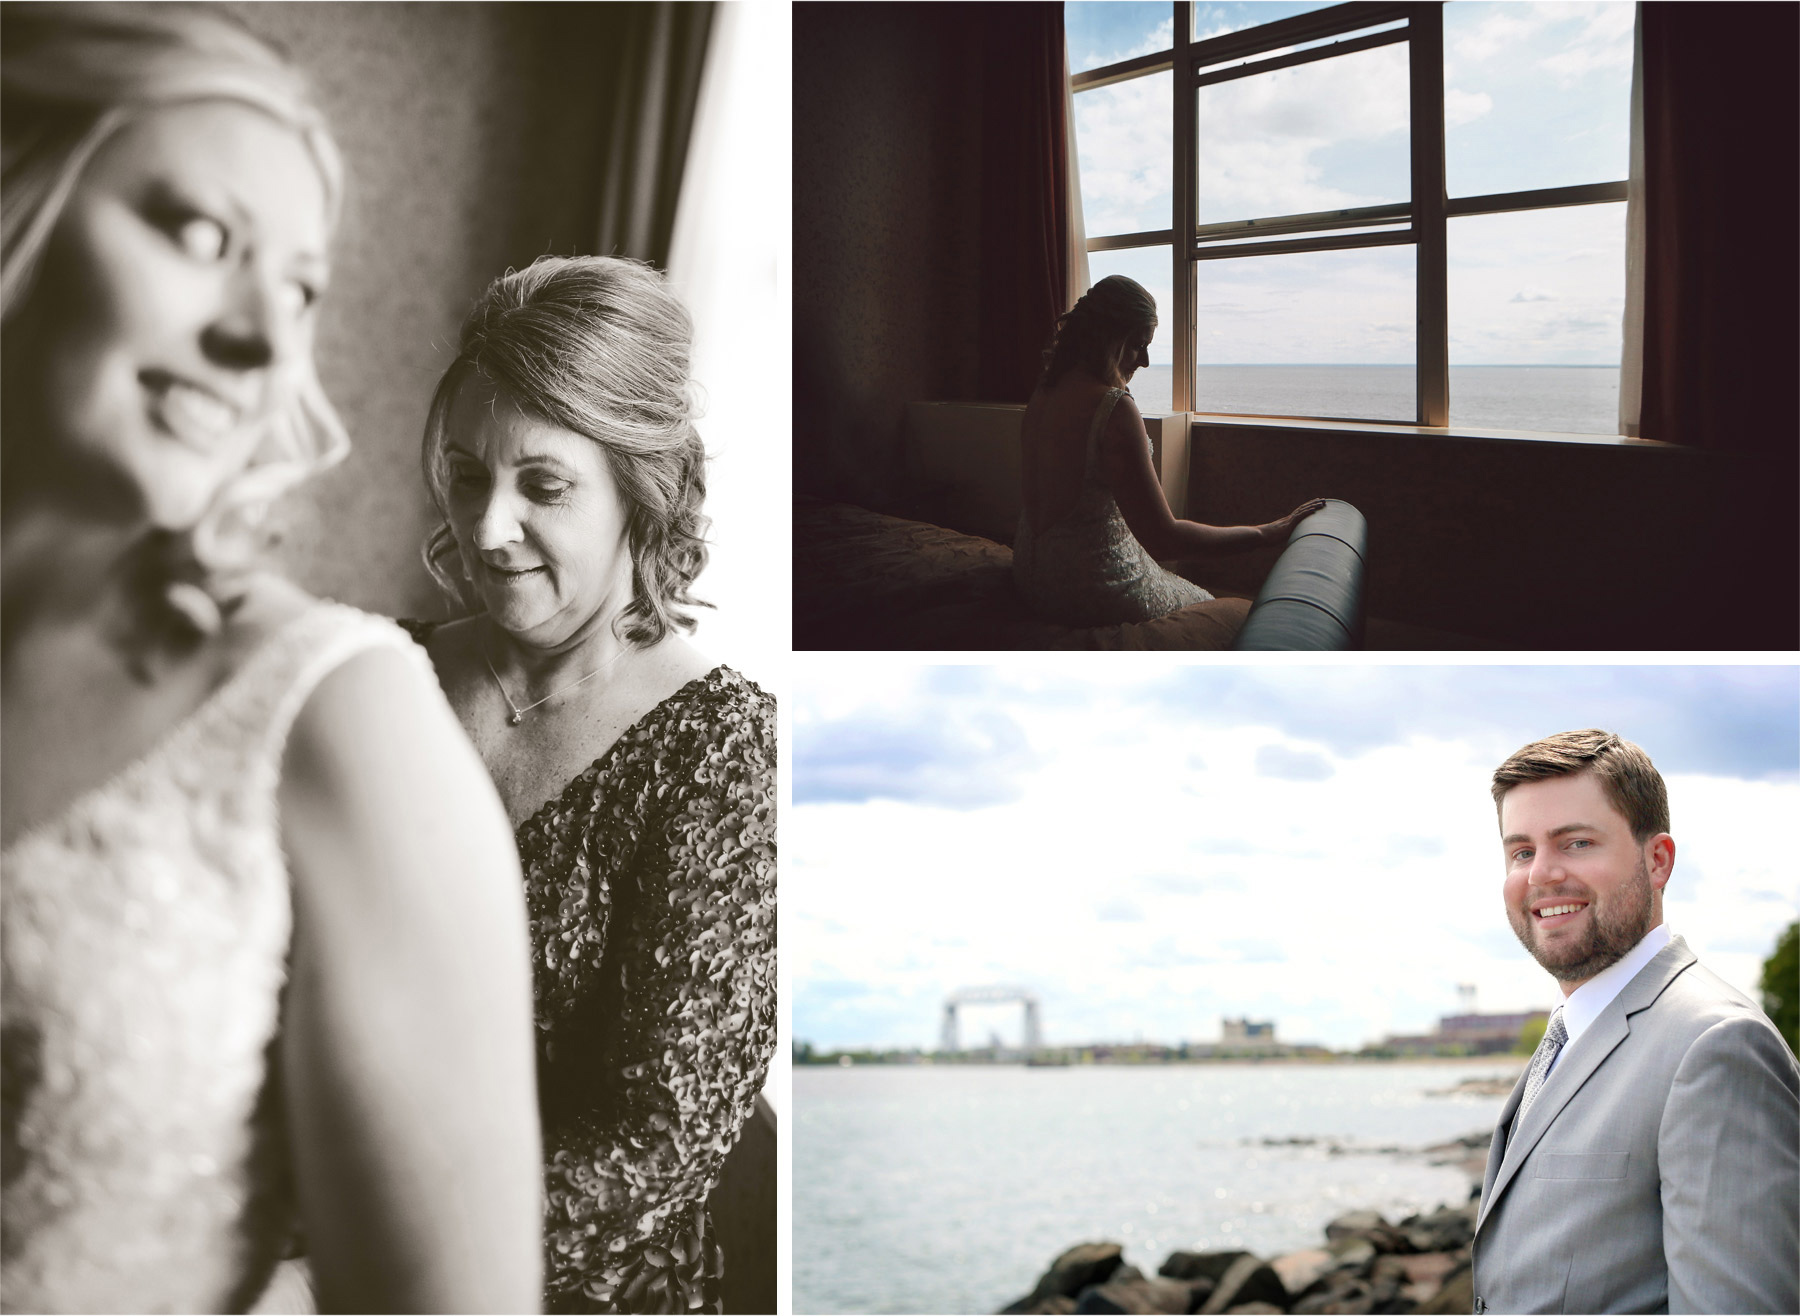 02-Duluth-Minnesota-Wedding-Photographer-by-Andrew-Vick-Photography-Summer-Sheraton-Hotel-Getting-Ready-Bride-Mother-Dress-Sepia-Groom-Lake-Superior-Aerial-Lift-Bridge-Katie-and-Andrew.jpg